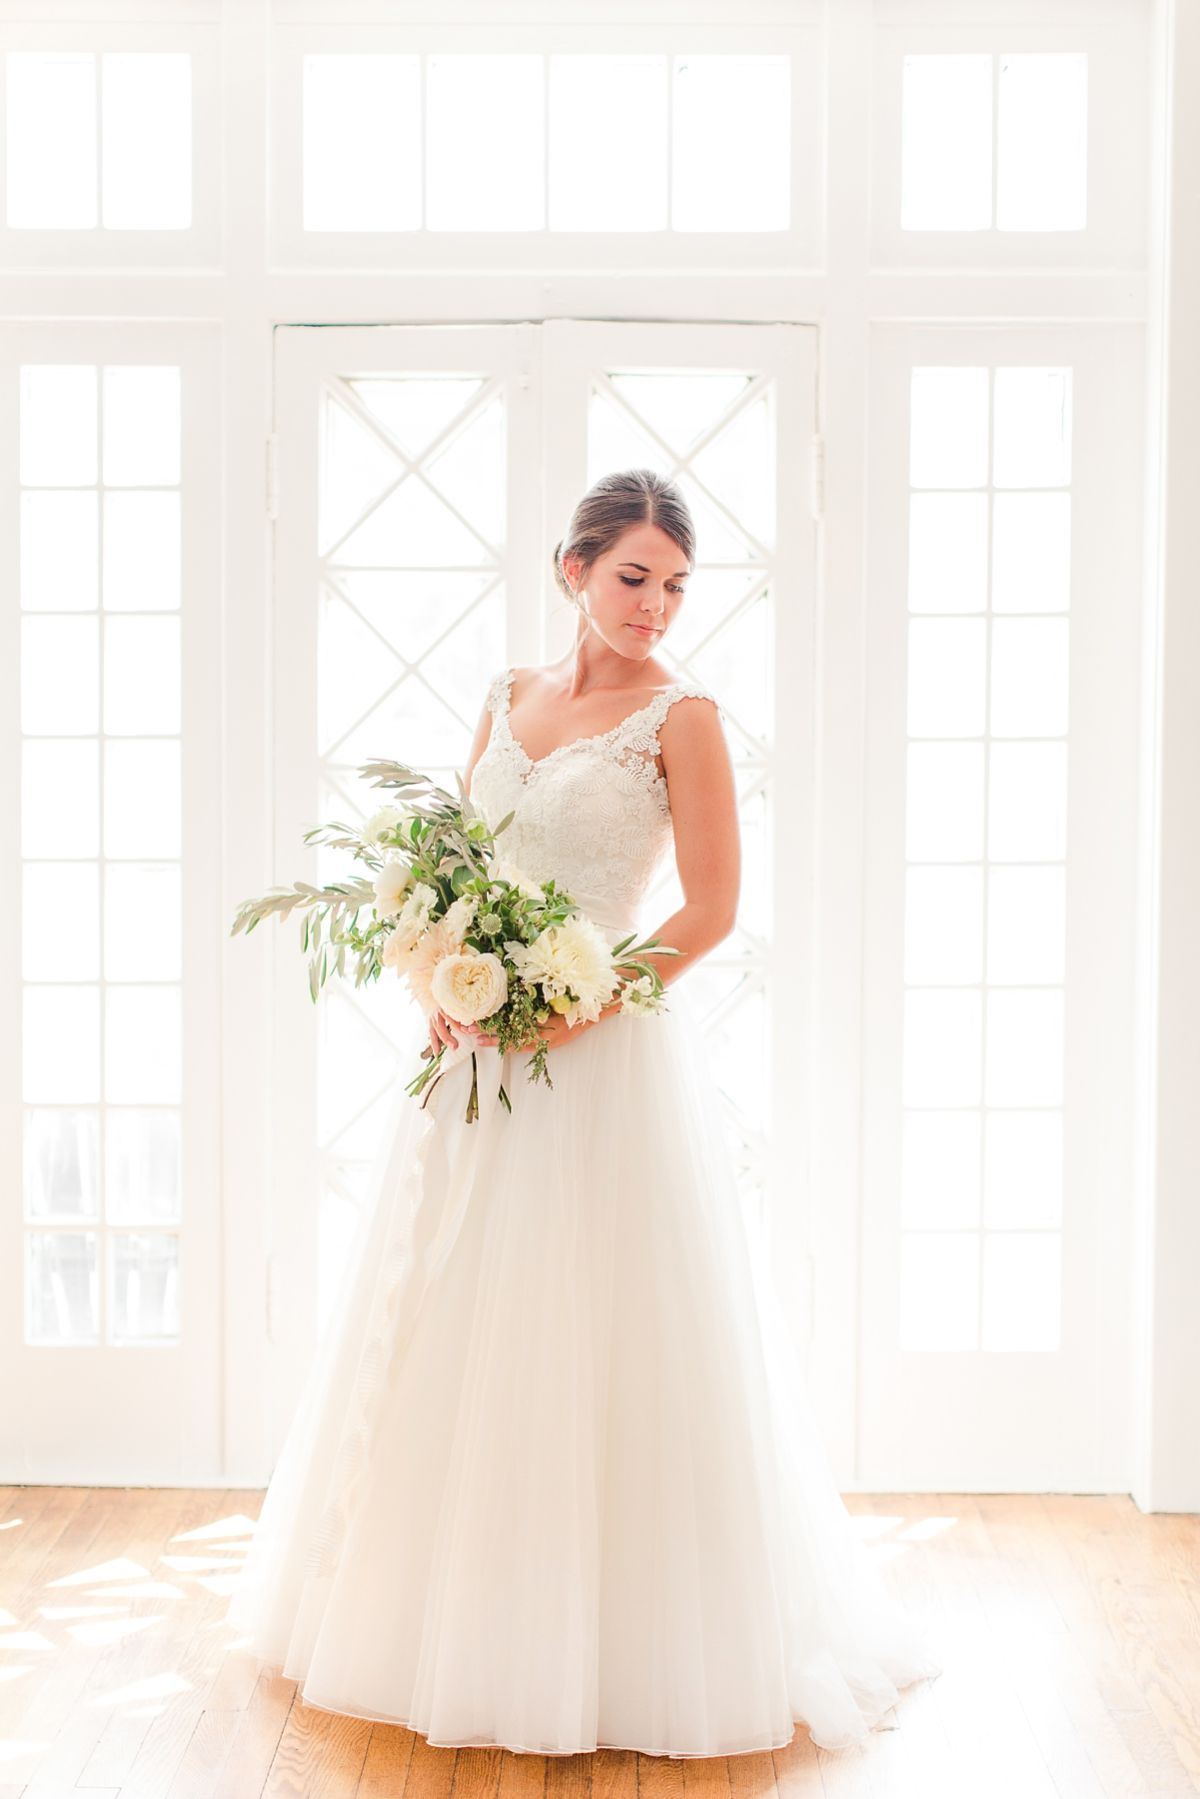 Classic Tuckahoe Womens Club Wedding In Richmond Virginia With A Lace And Tulle Dress